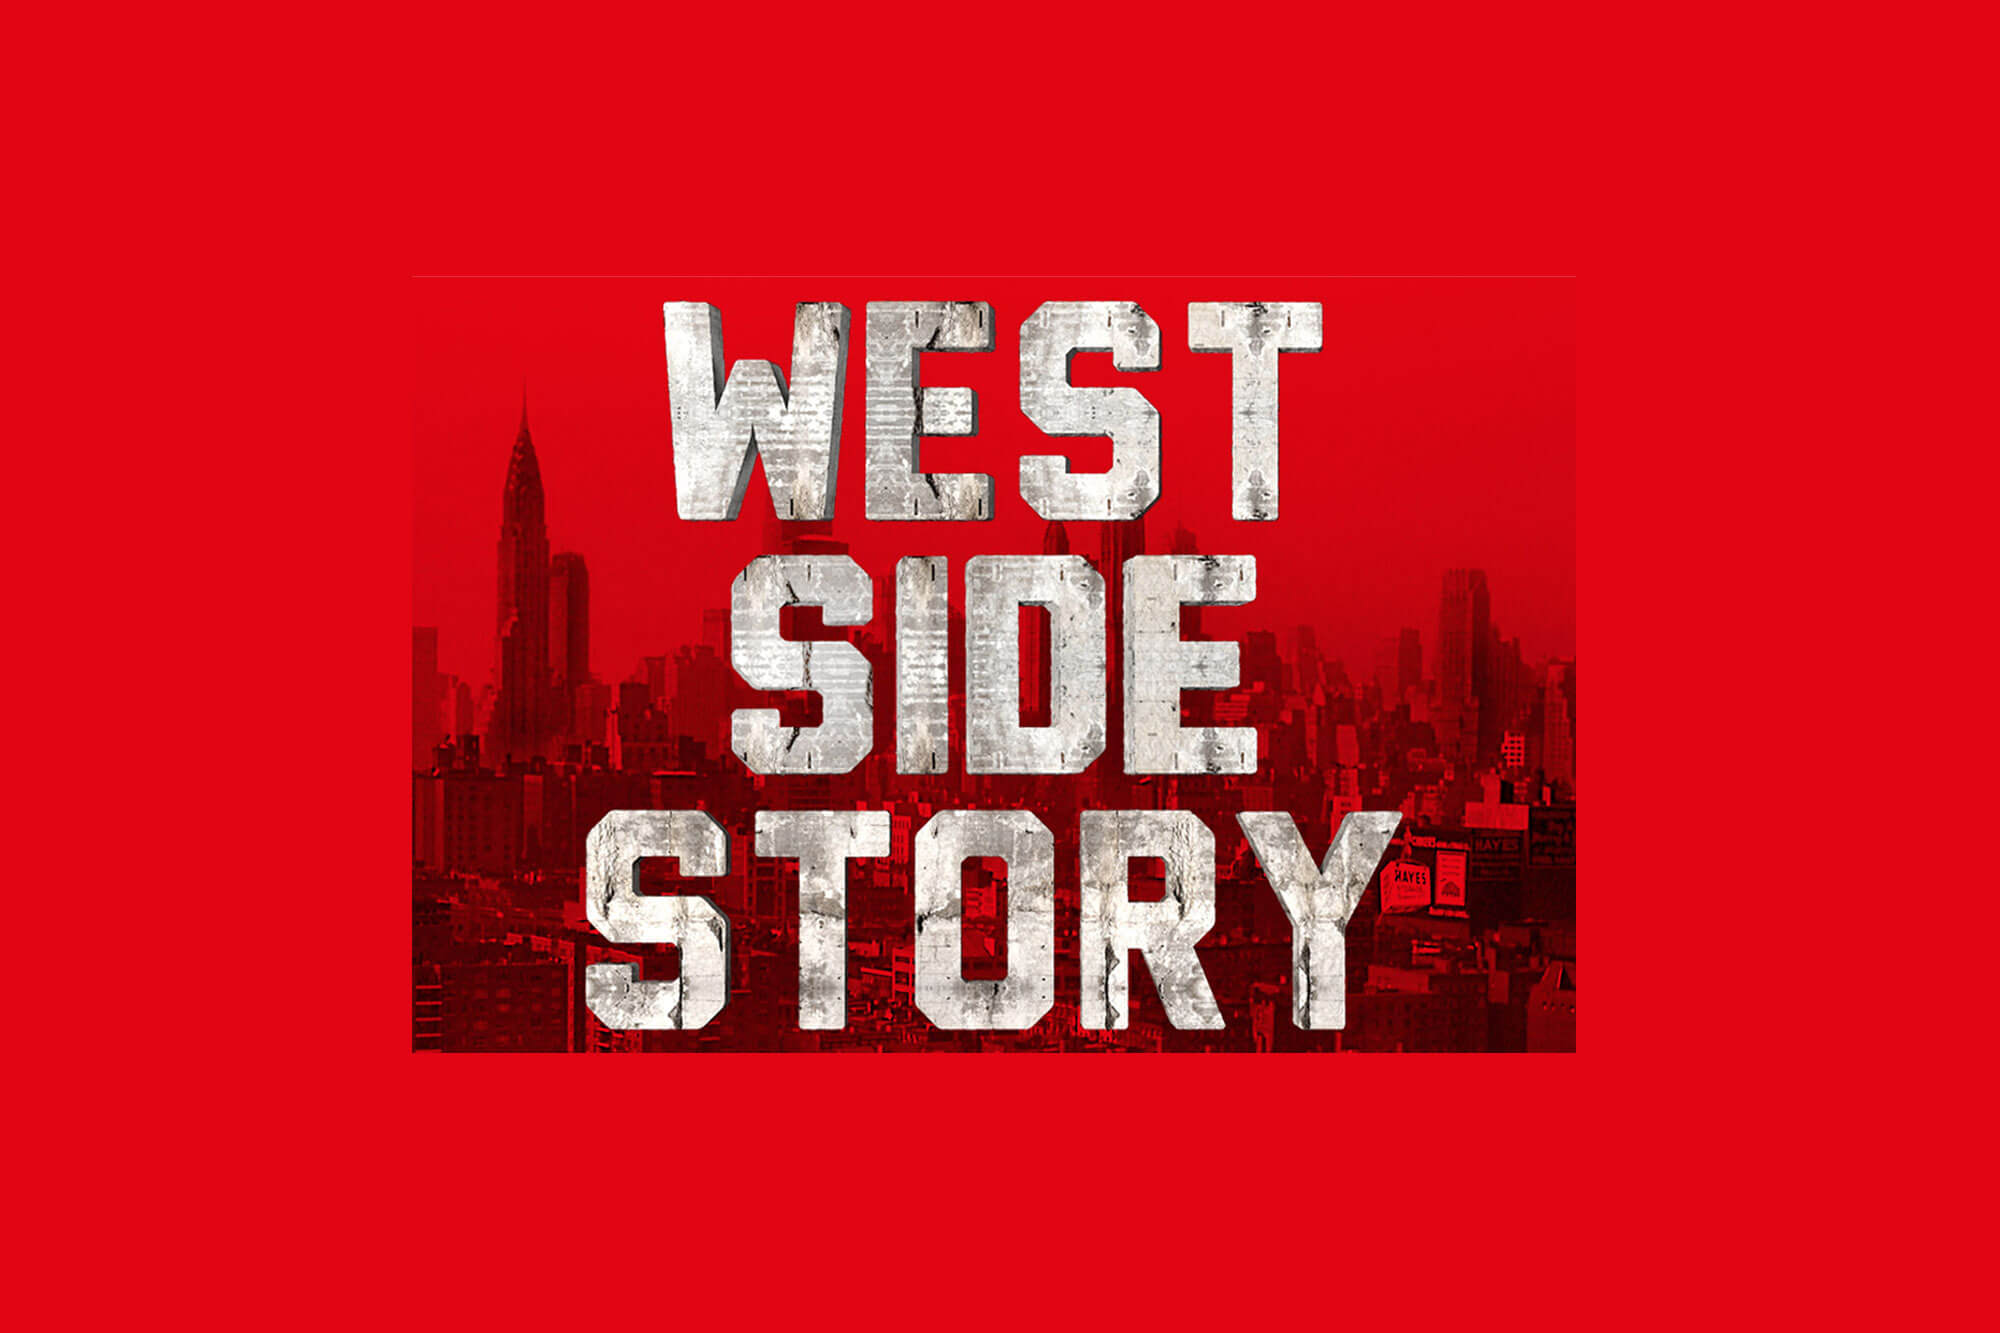 West Side Story title on red background